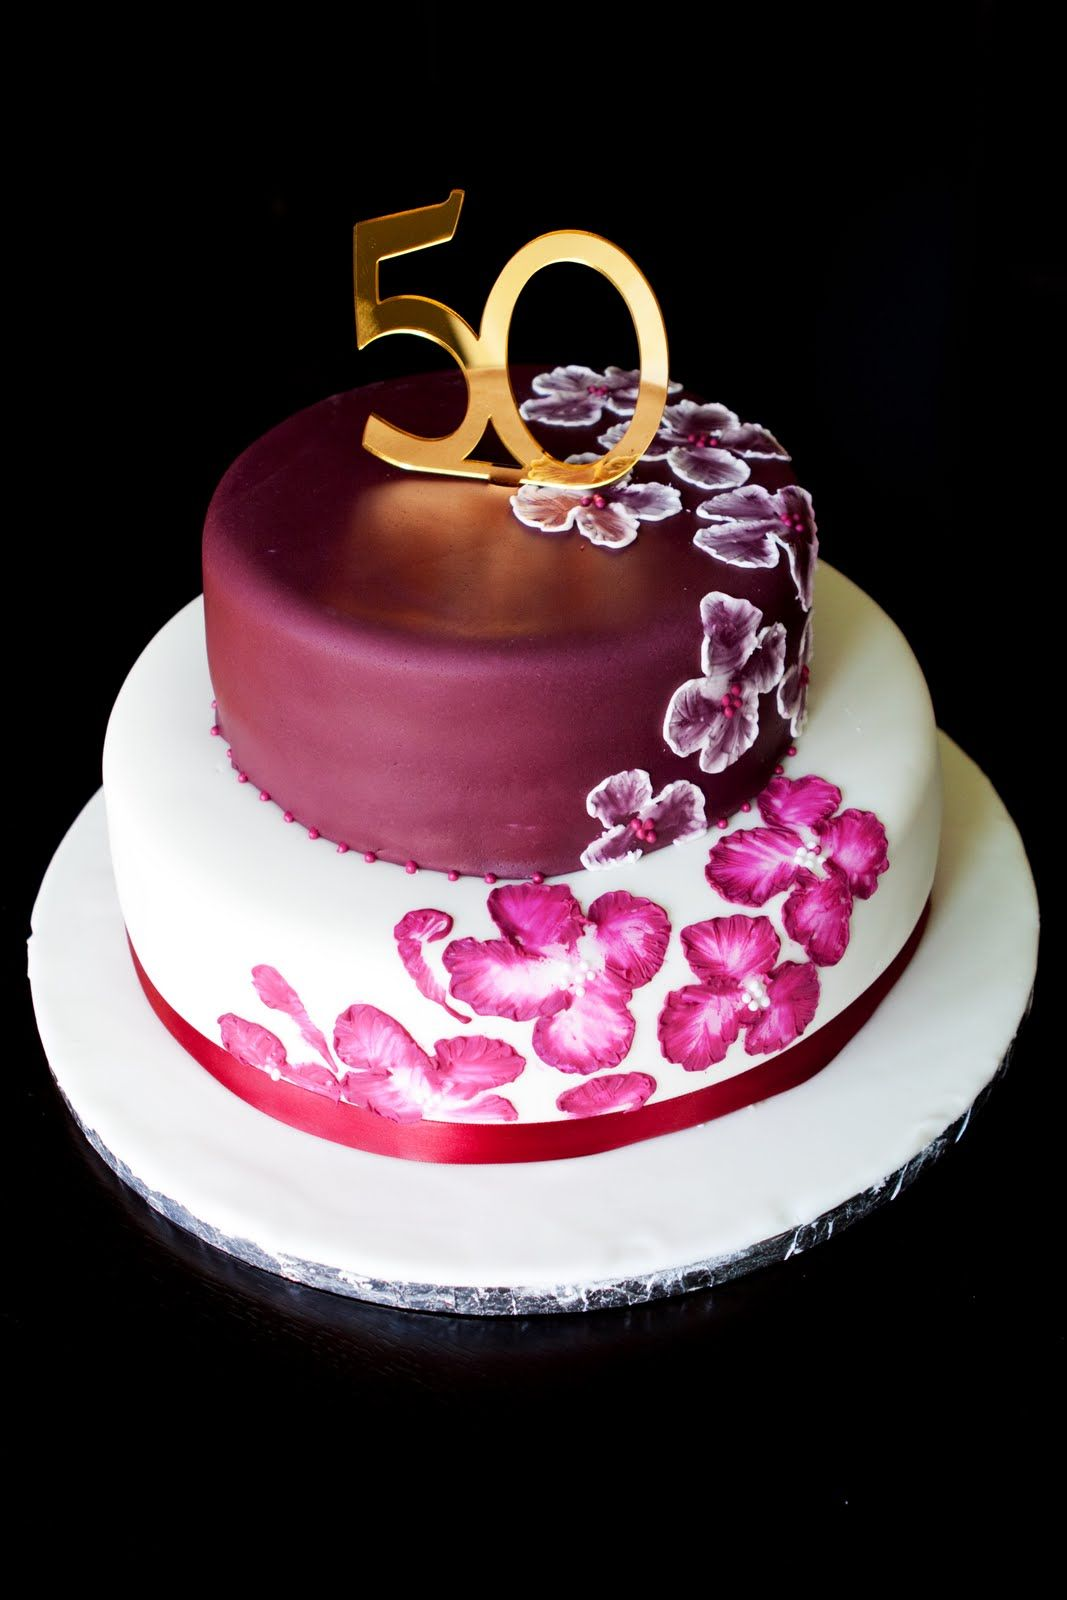 Unique Anniversary Cake Design : Unique Elegant Birthday Cakes Custom Cake/Elegant Design ...